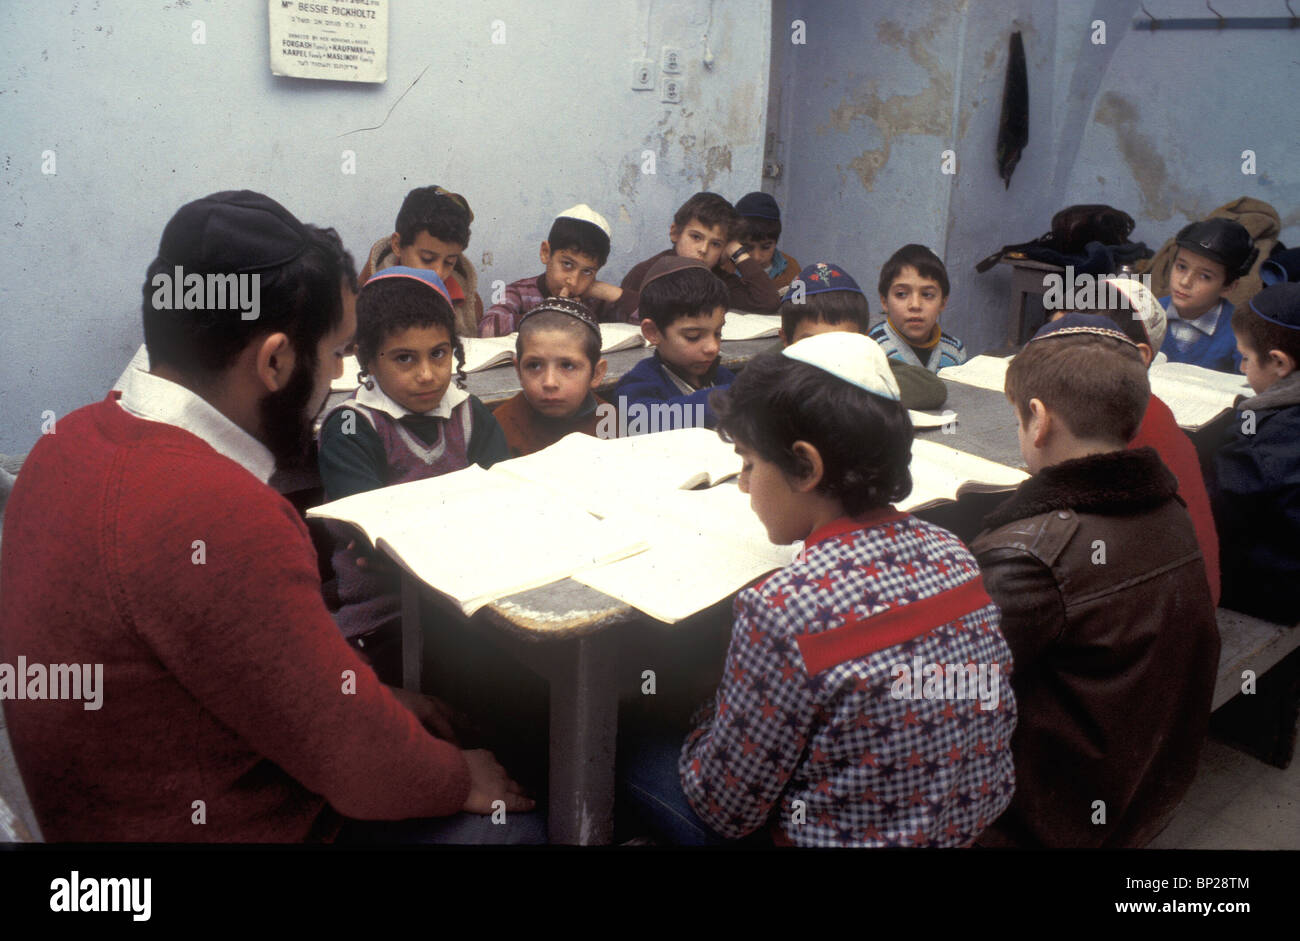 CHILDREN STUDYING THE TORAH IN A 'HEDER' (RABINICAL CLASS) IN JERUSALEM 2347 CHILDREN STUDYING THE TORAH - Stock Image